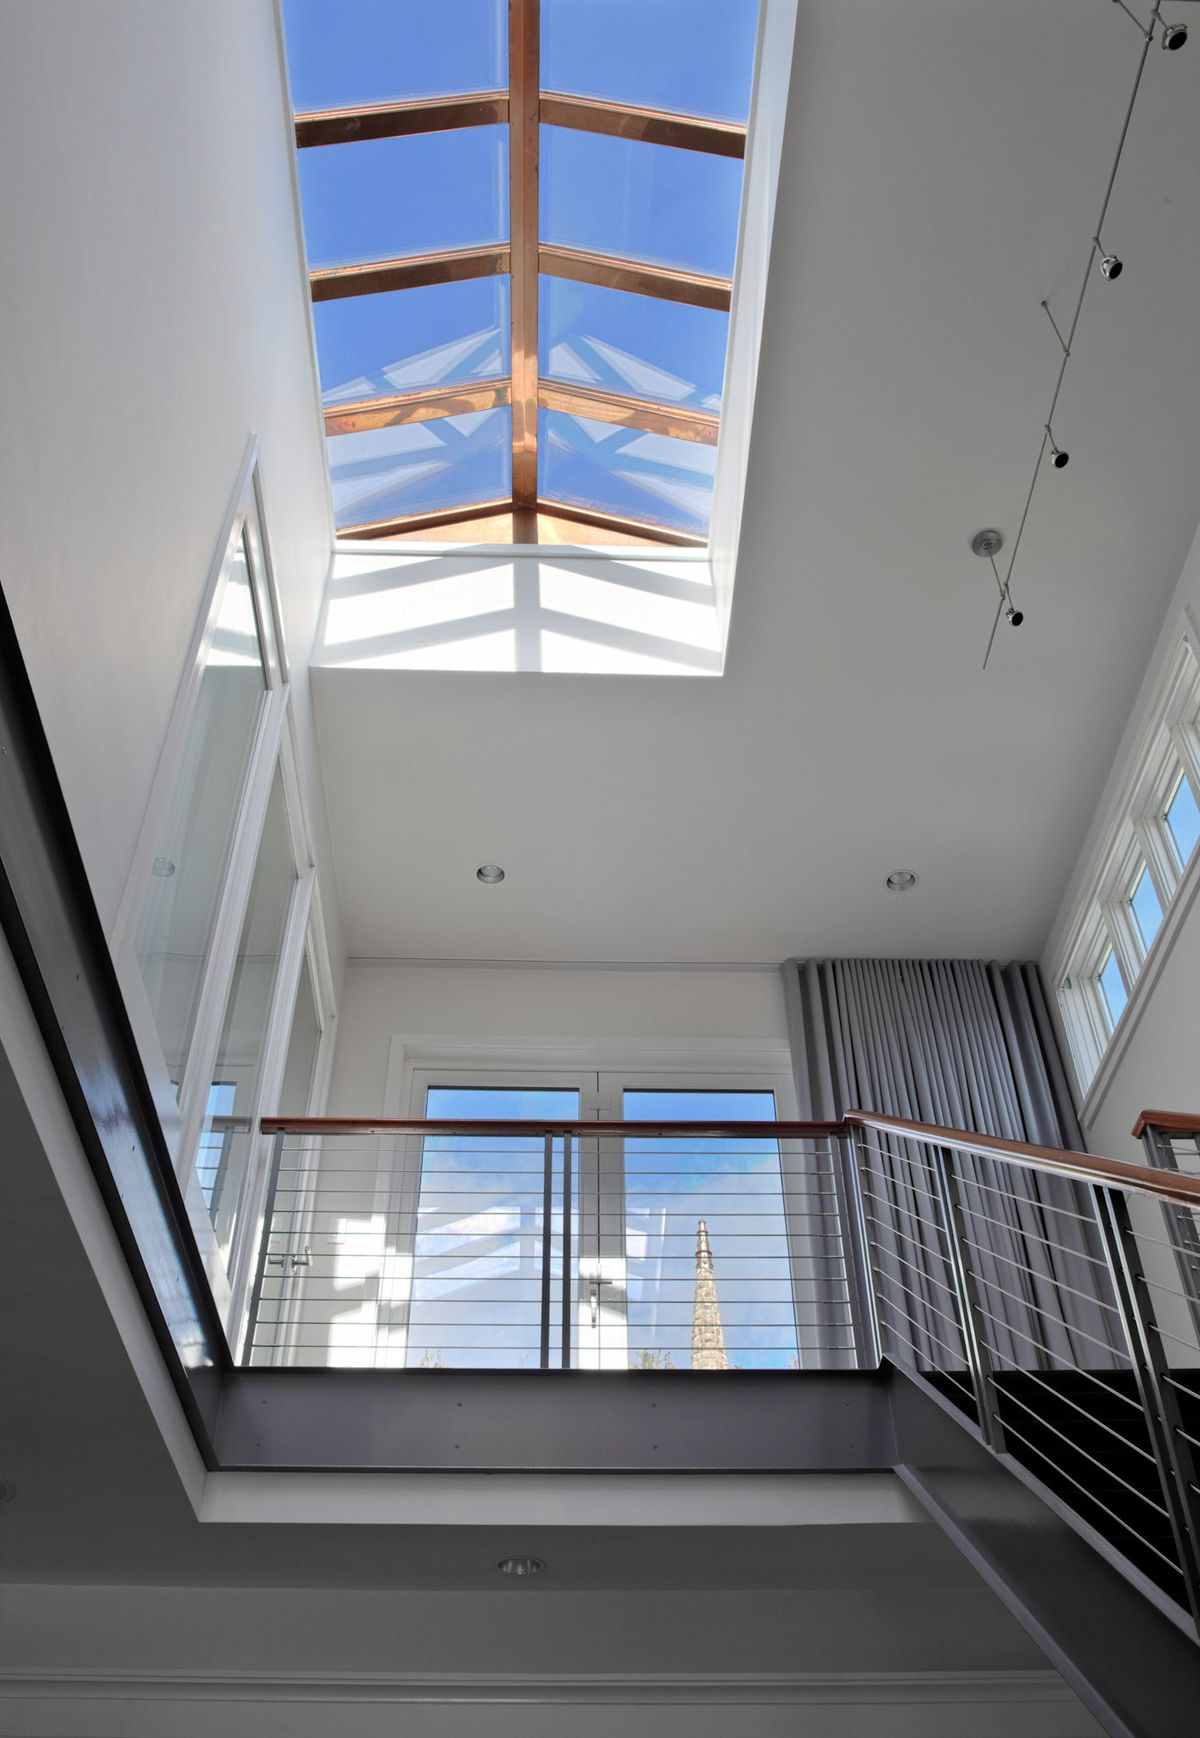 A view from a staircase looking up to a home's skylight.